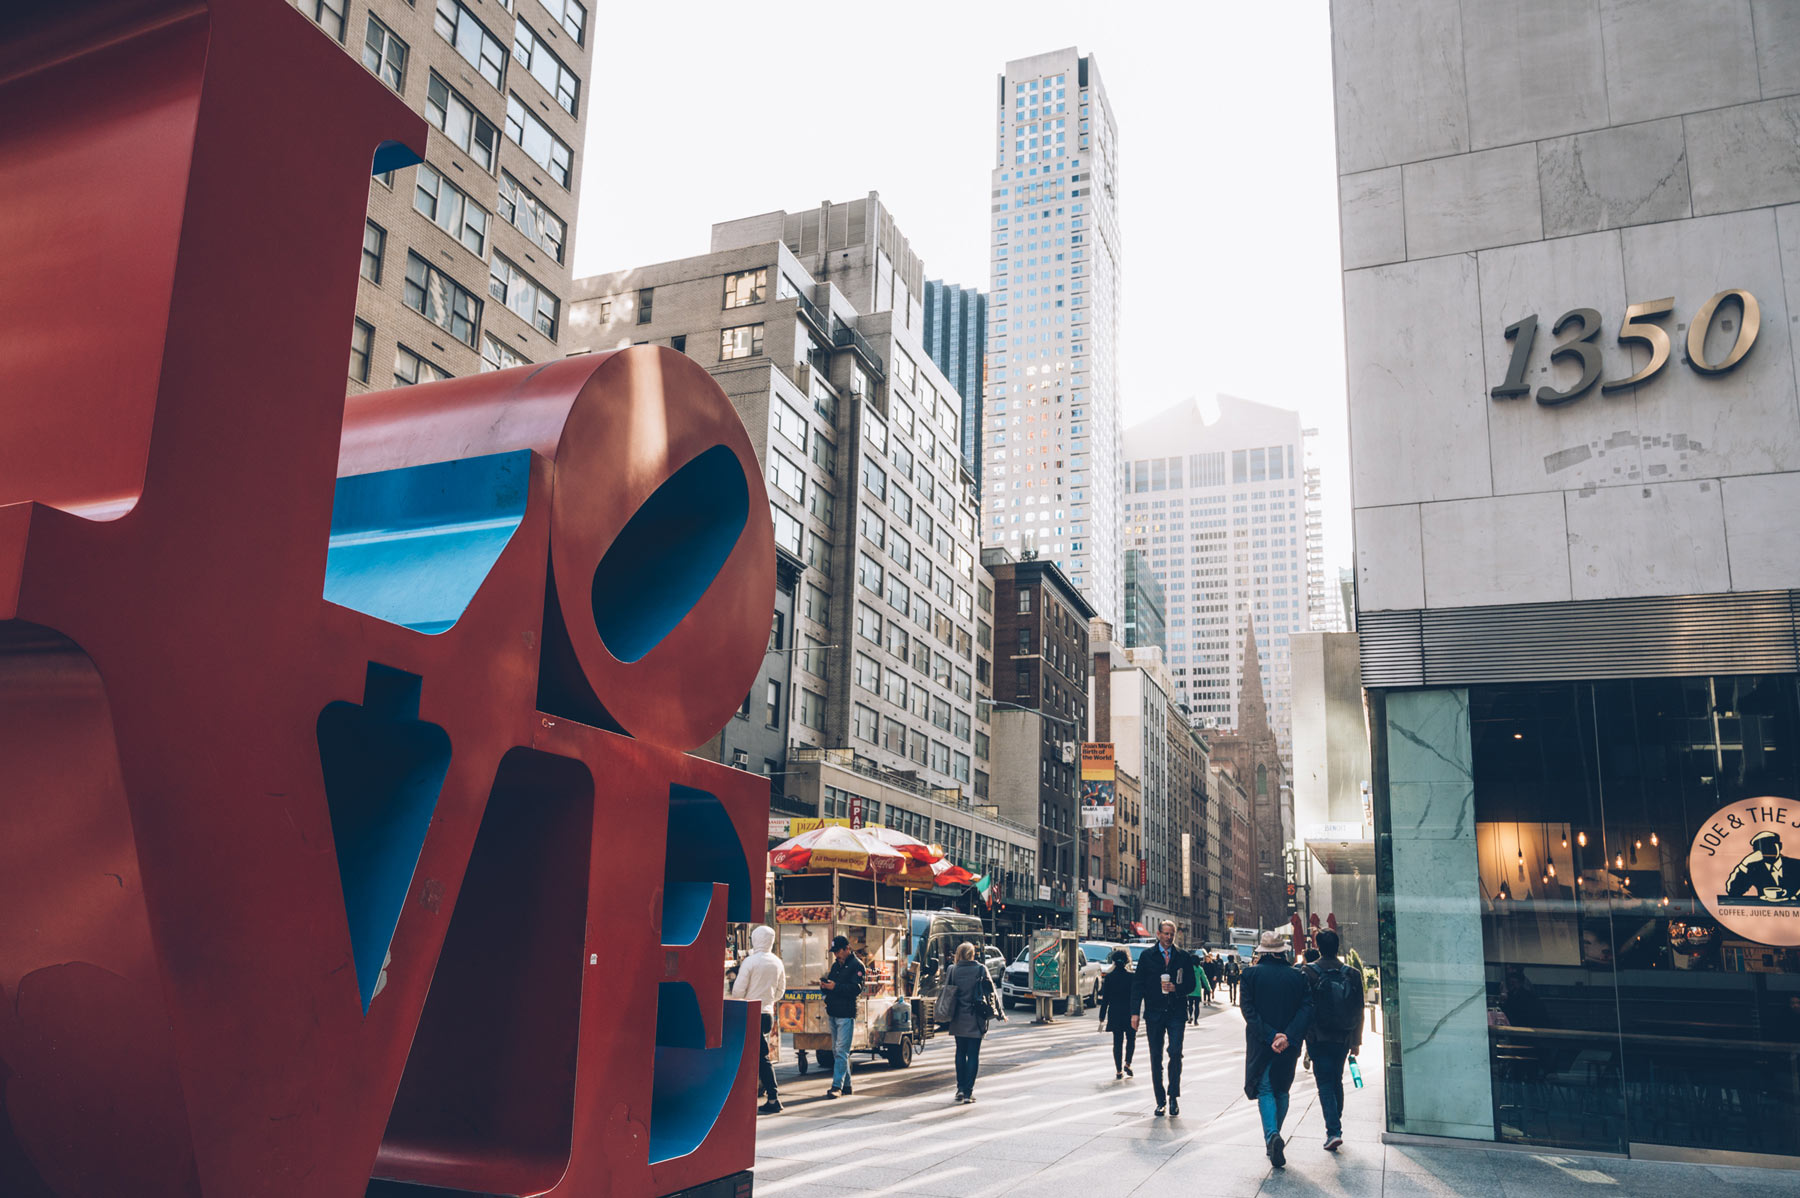 LOVE Sculpture, New York